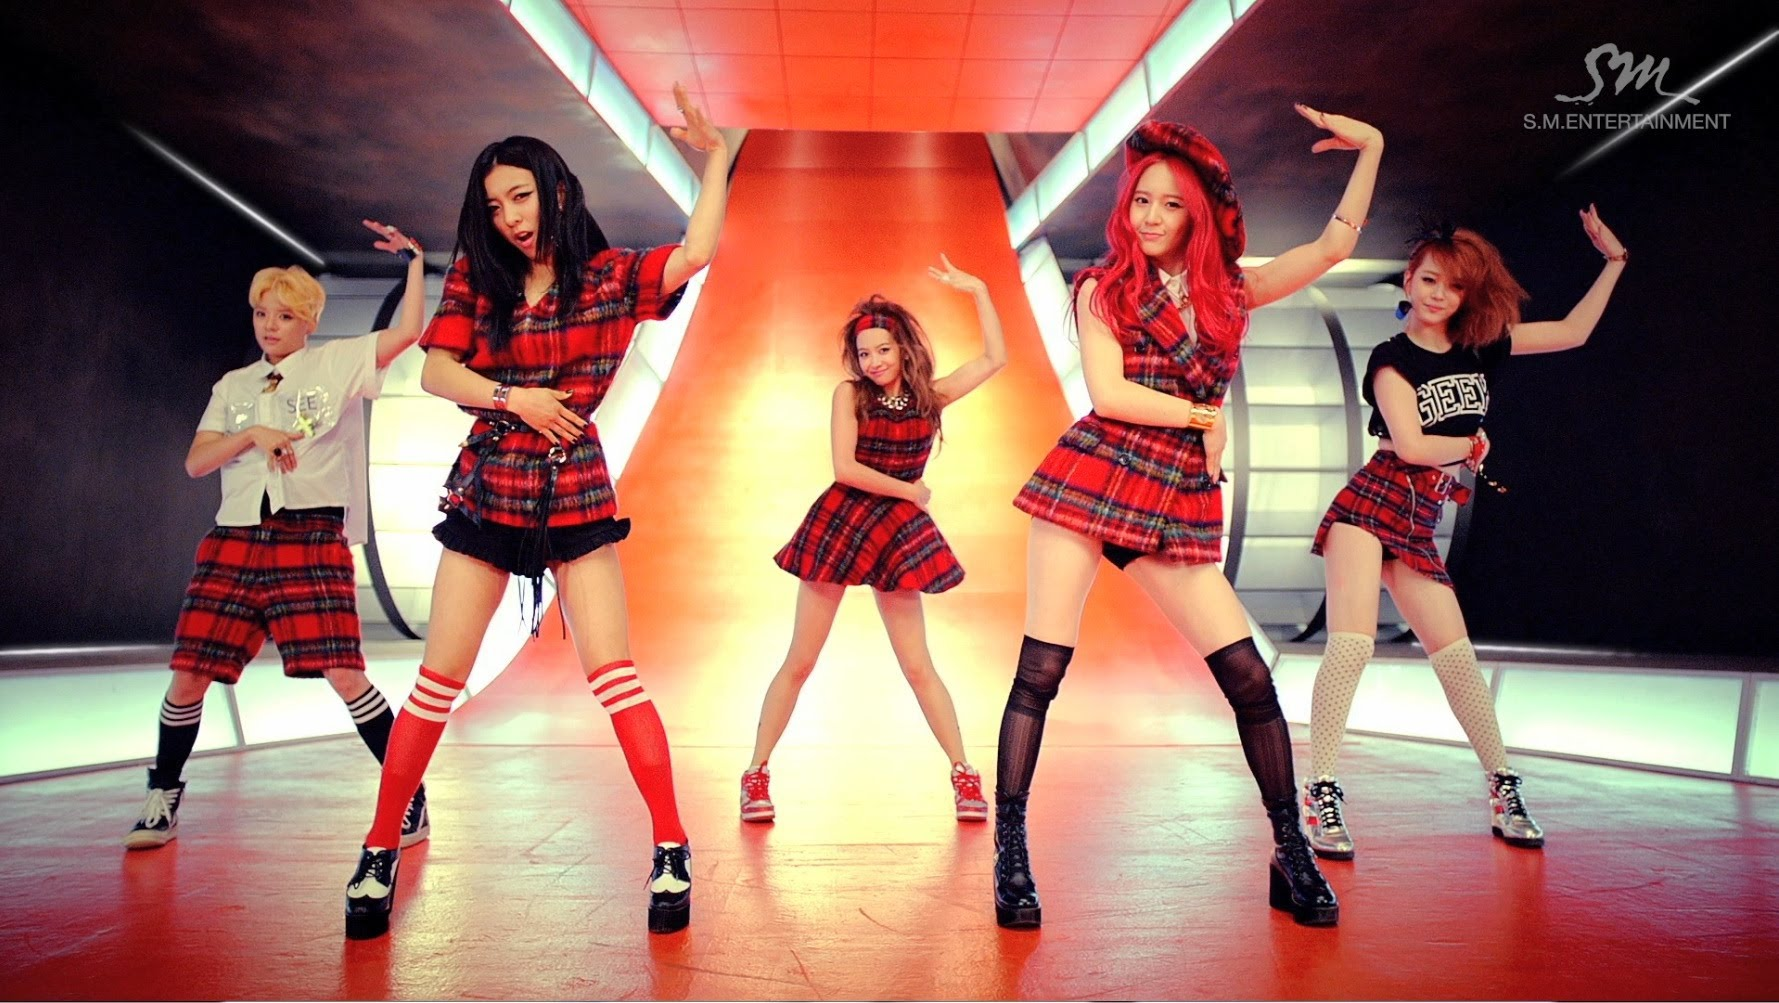 6 Best K-Pop School Uniform Concept Music Videos - KultScene F(x) Amber Rum Pum Pum Pum